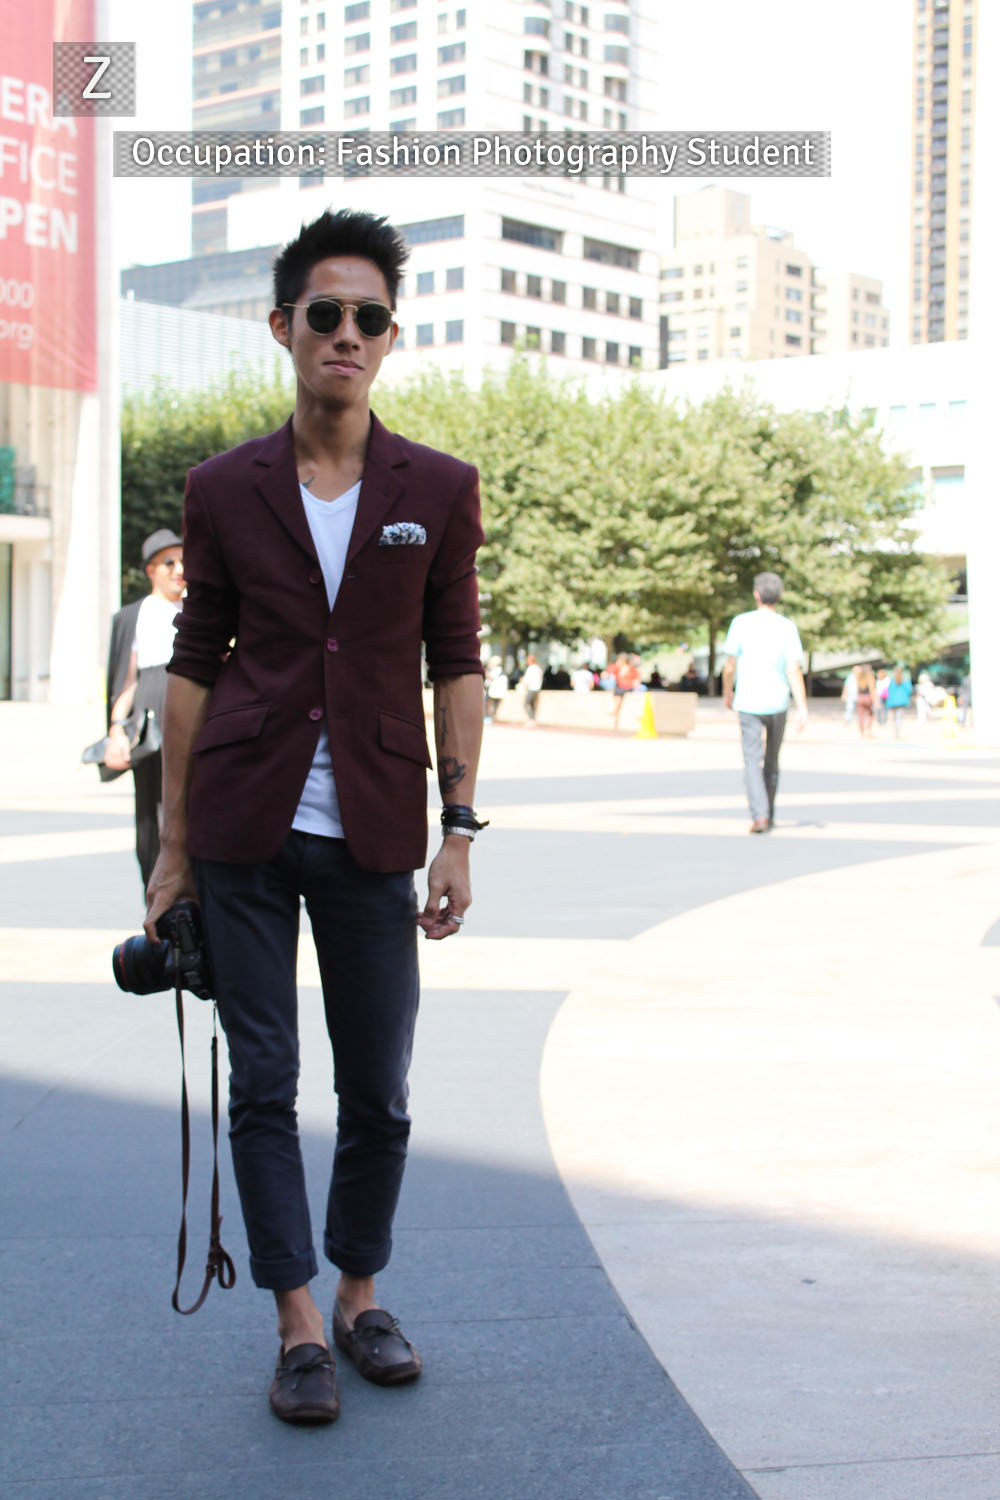 Corra's New York Fashion Week Street Style Blog | Day 1 - Z from Singapore